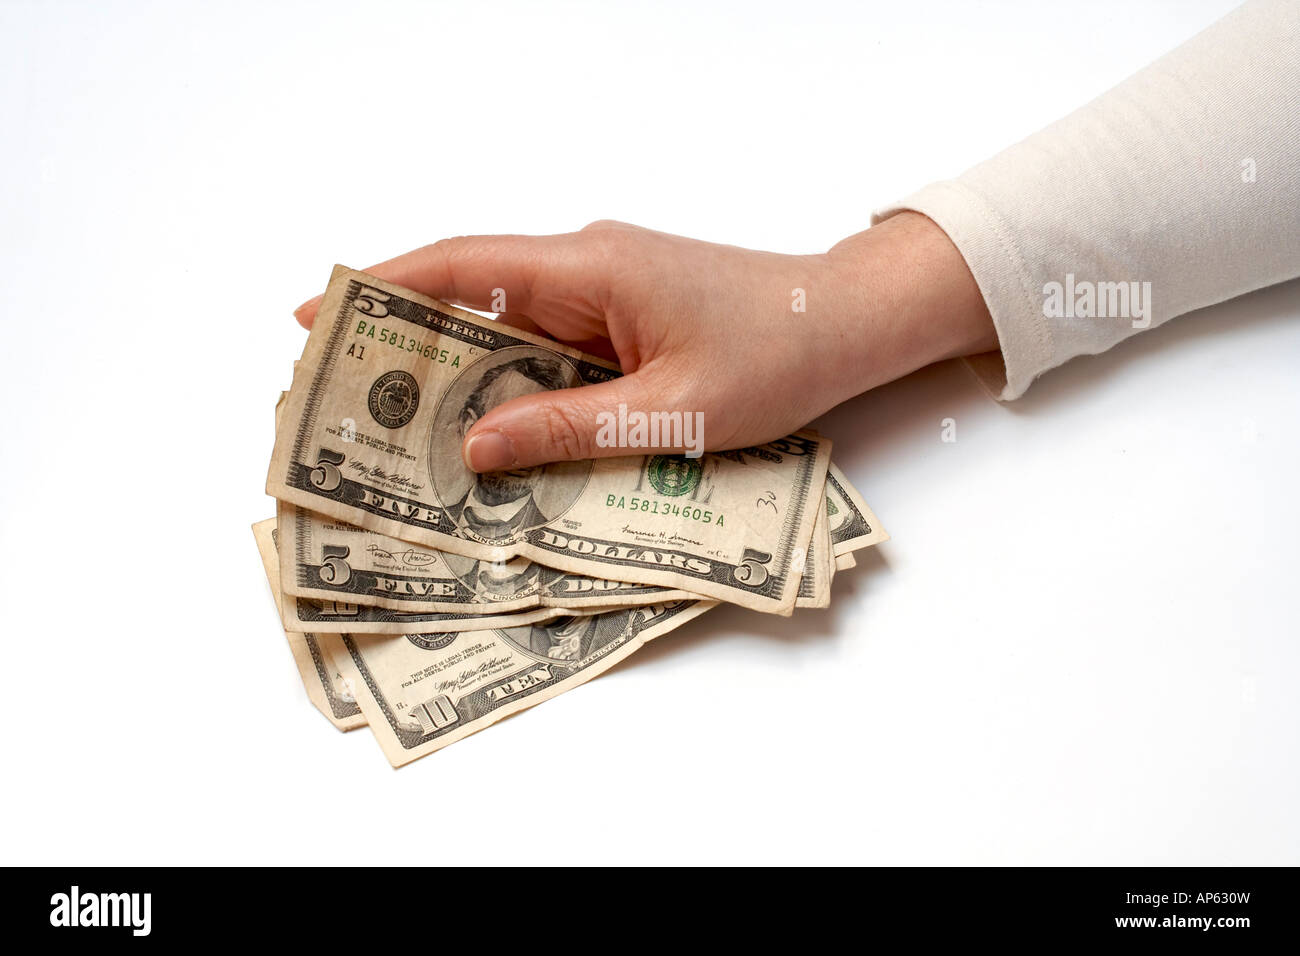 Hand Holding Fan of American Money - Stock Image